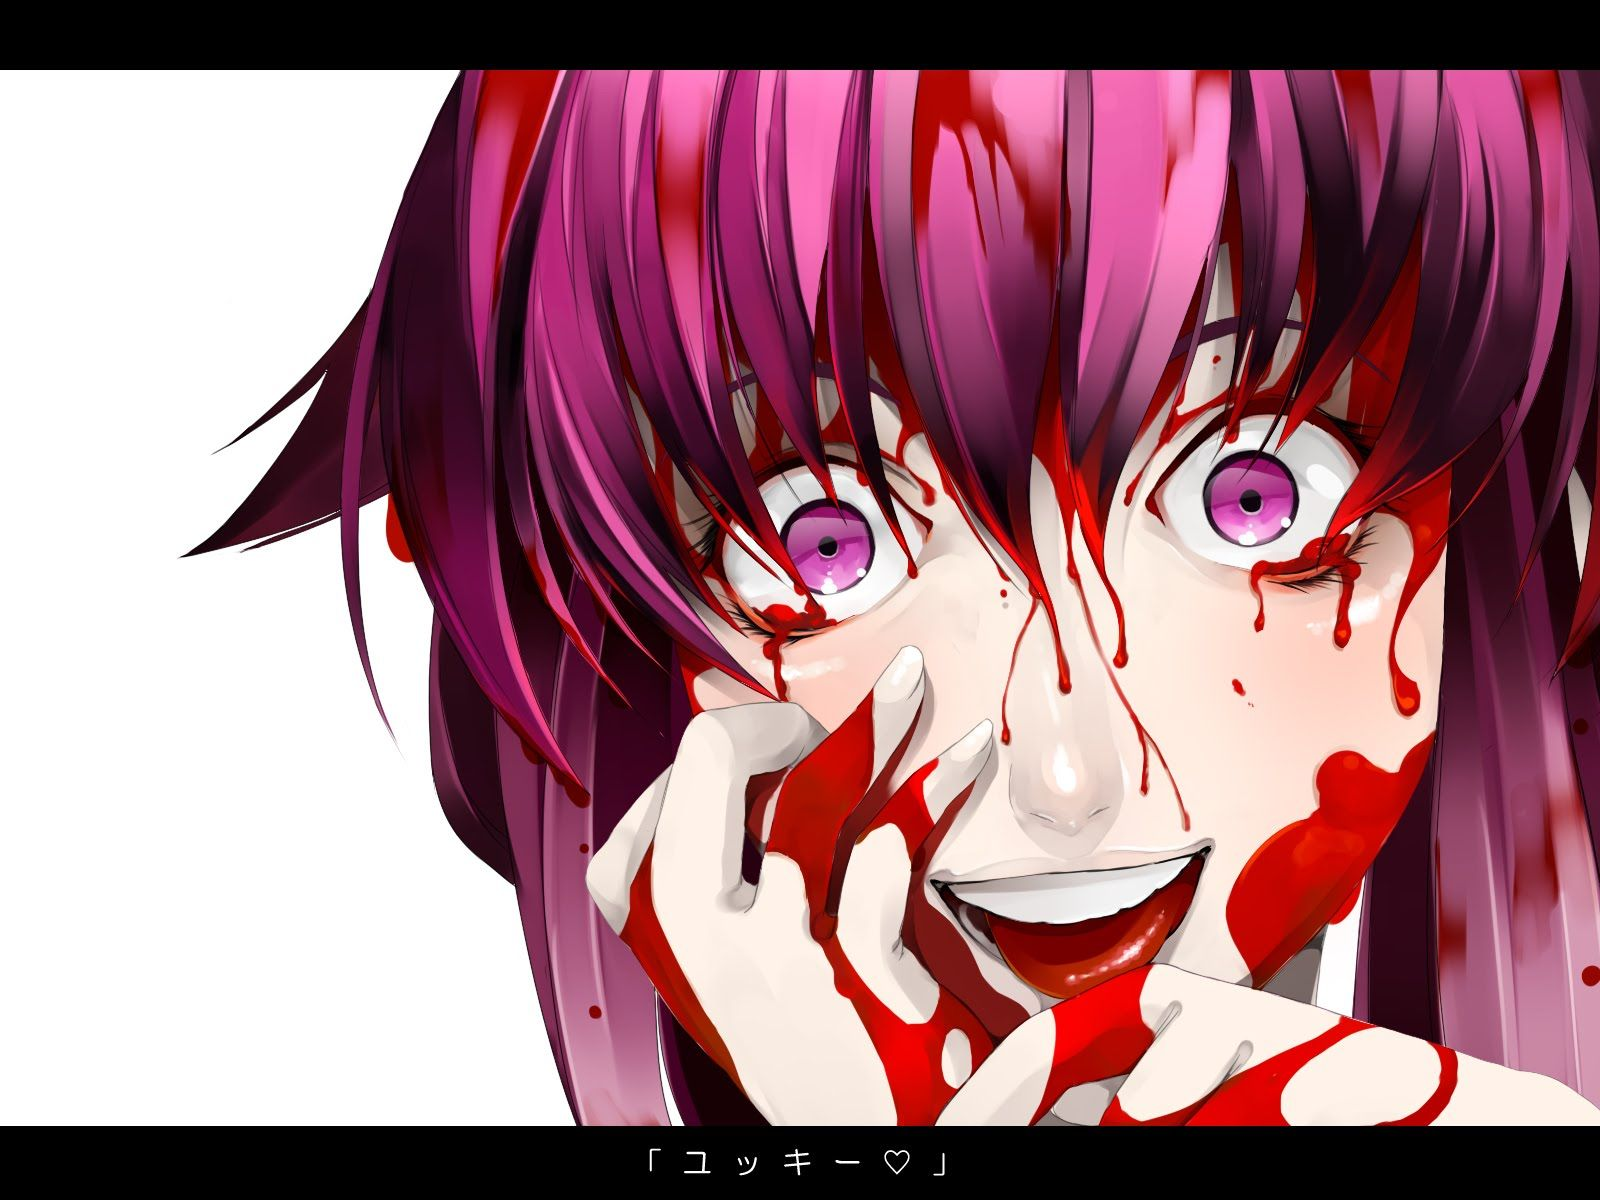 After watching Mirai Nikki in one setting, all of the 26